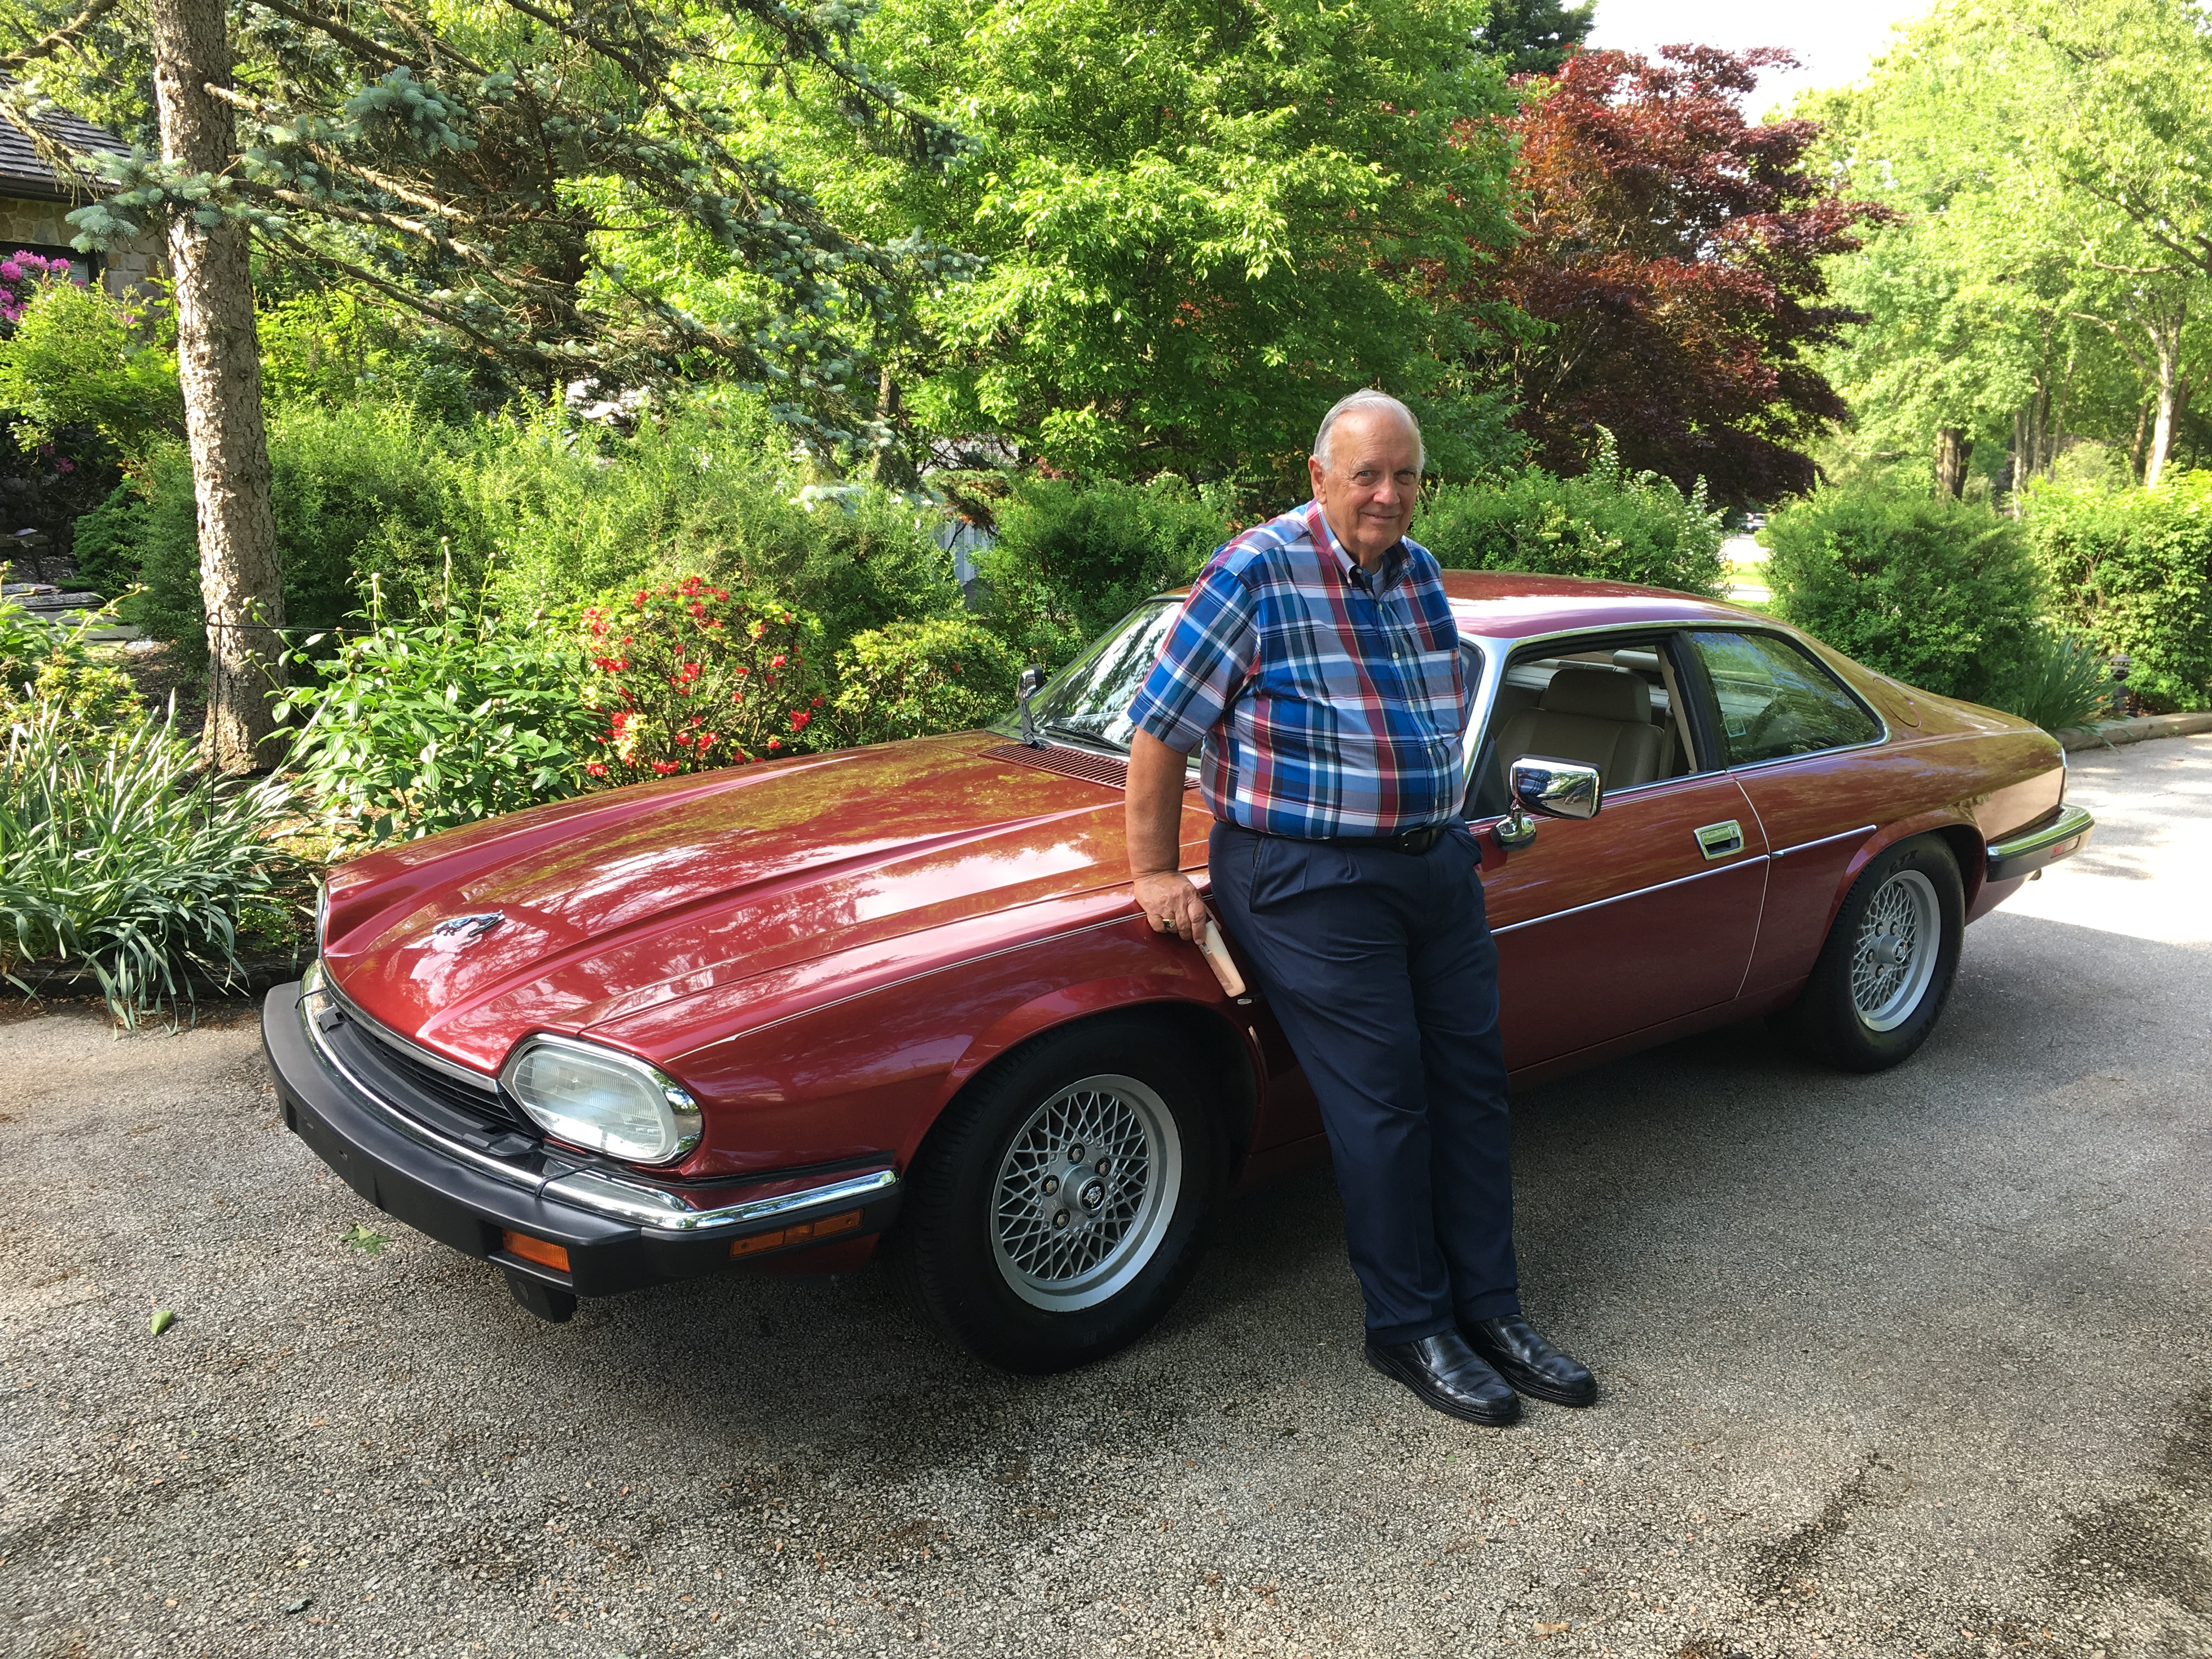 C.M.'s father poses next to a 1993 Jaguar XJS, one of a few classic cars owned by his son. | Submitted photo